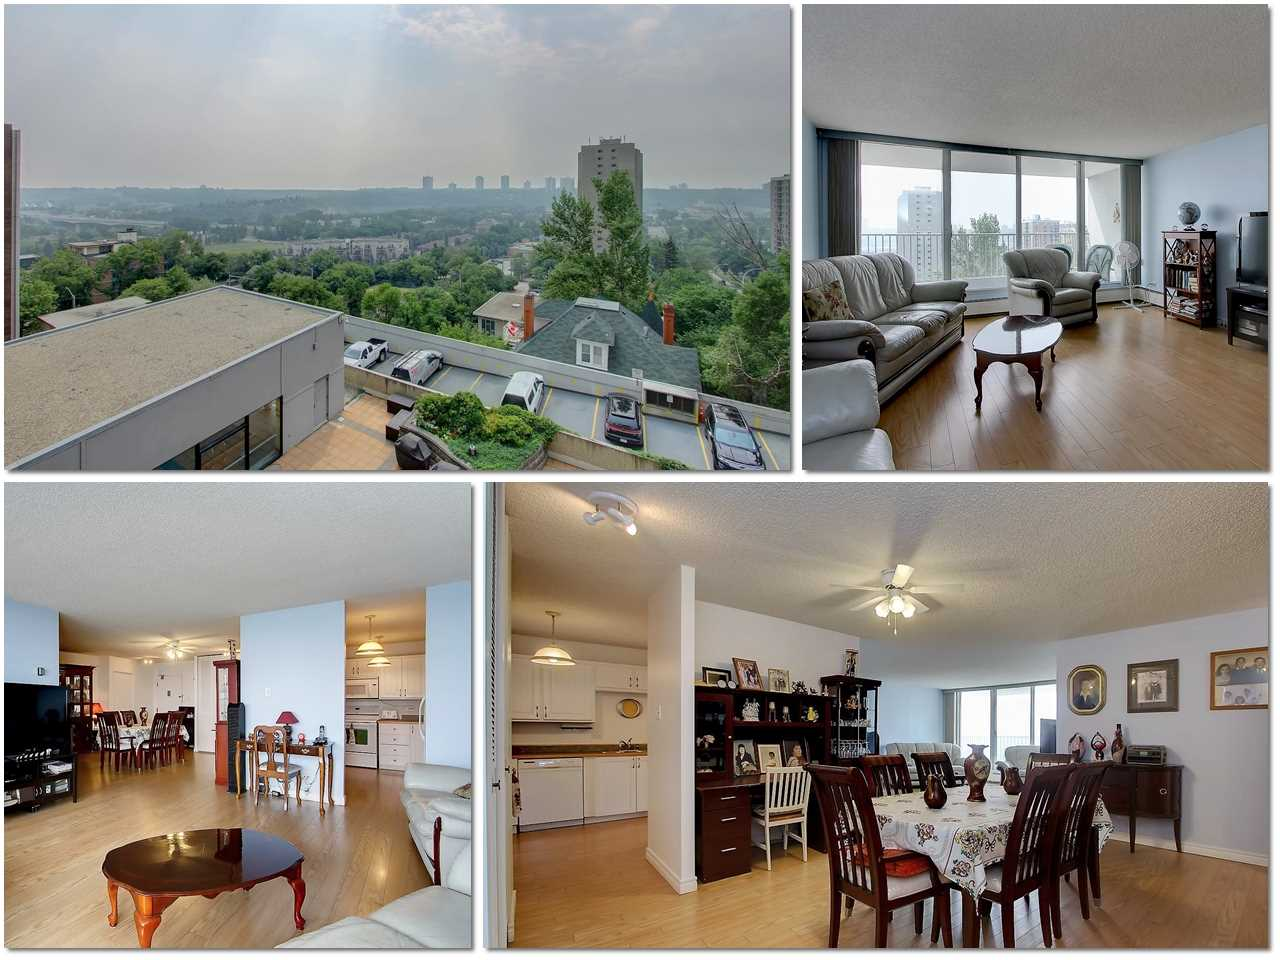 Main Photo: 402 9923 103 Street in Edmonton: Zone 12 Condo for sale : MLS® # E4074761